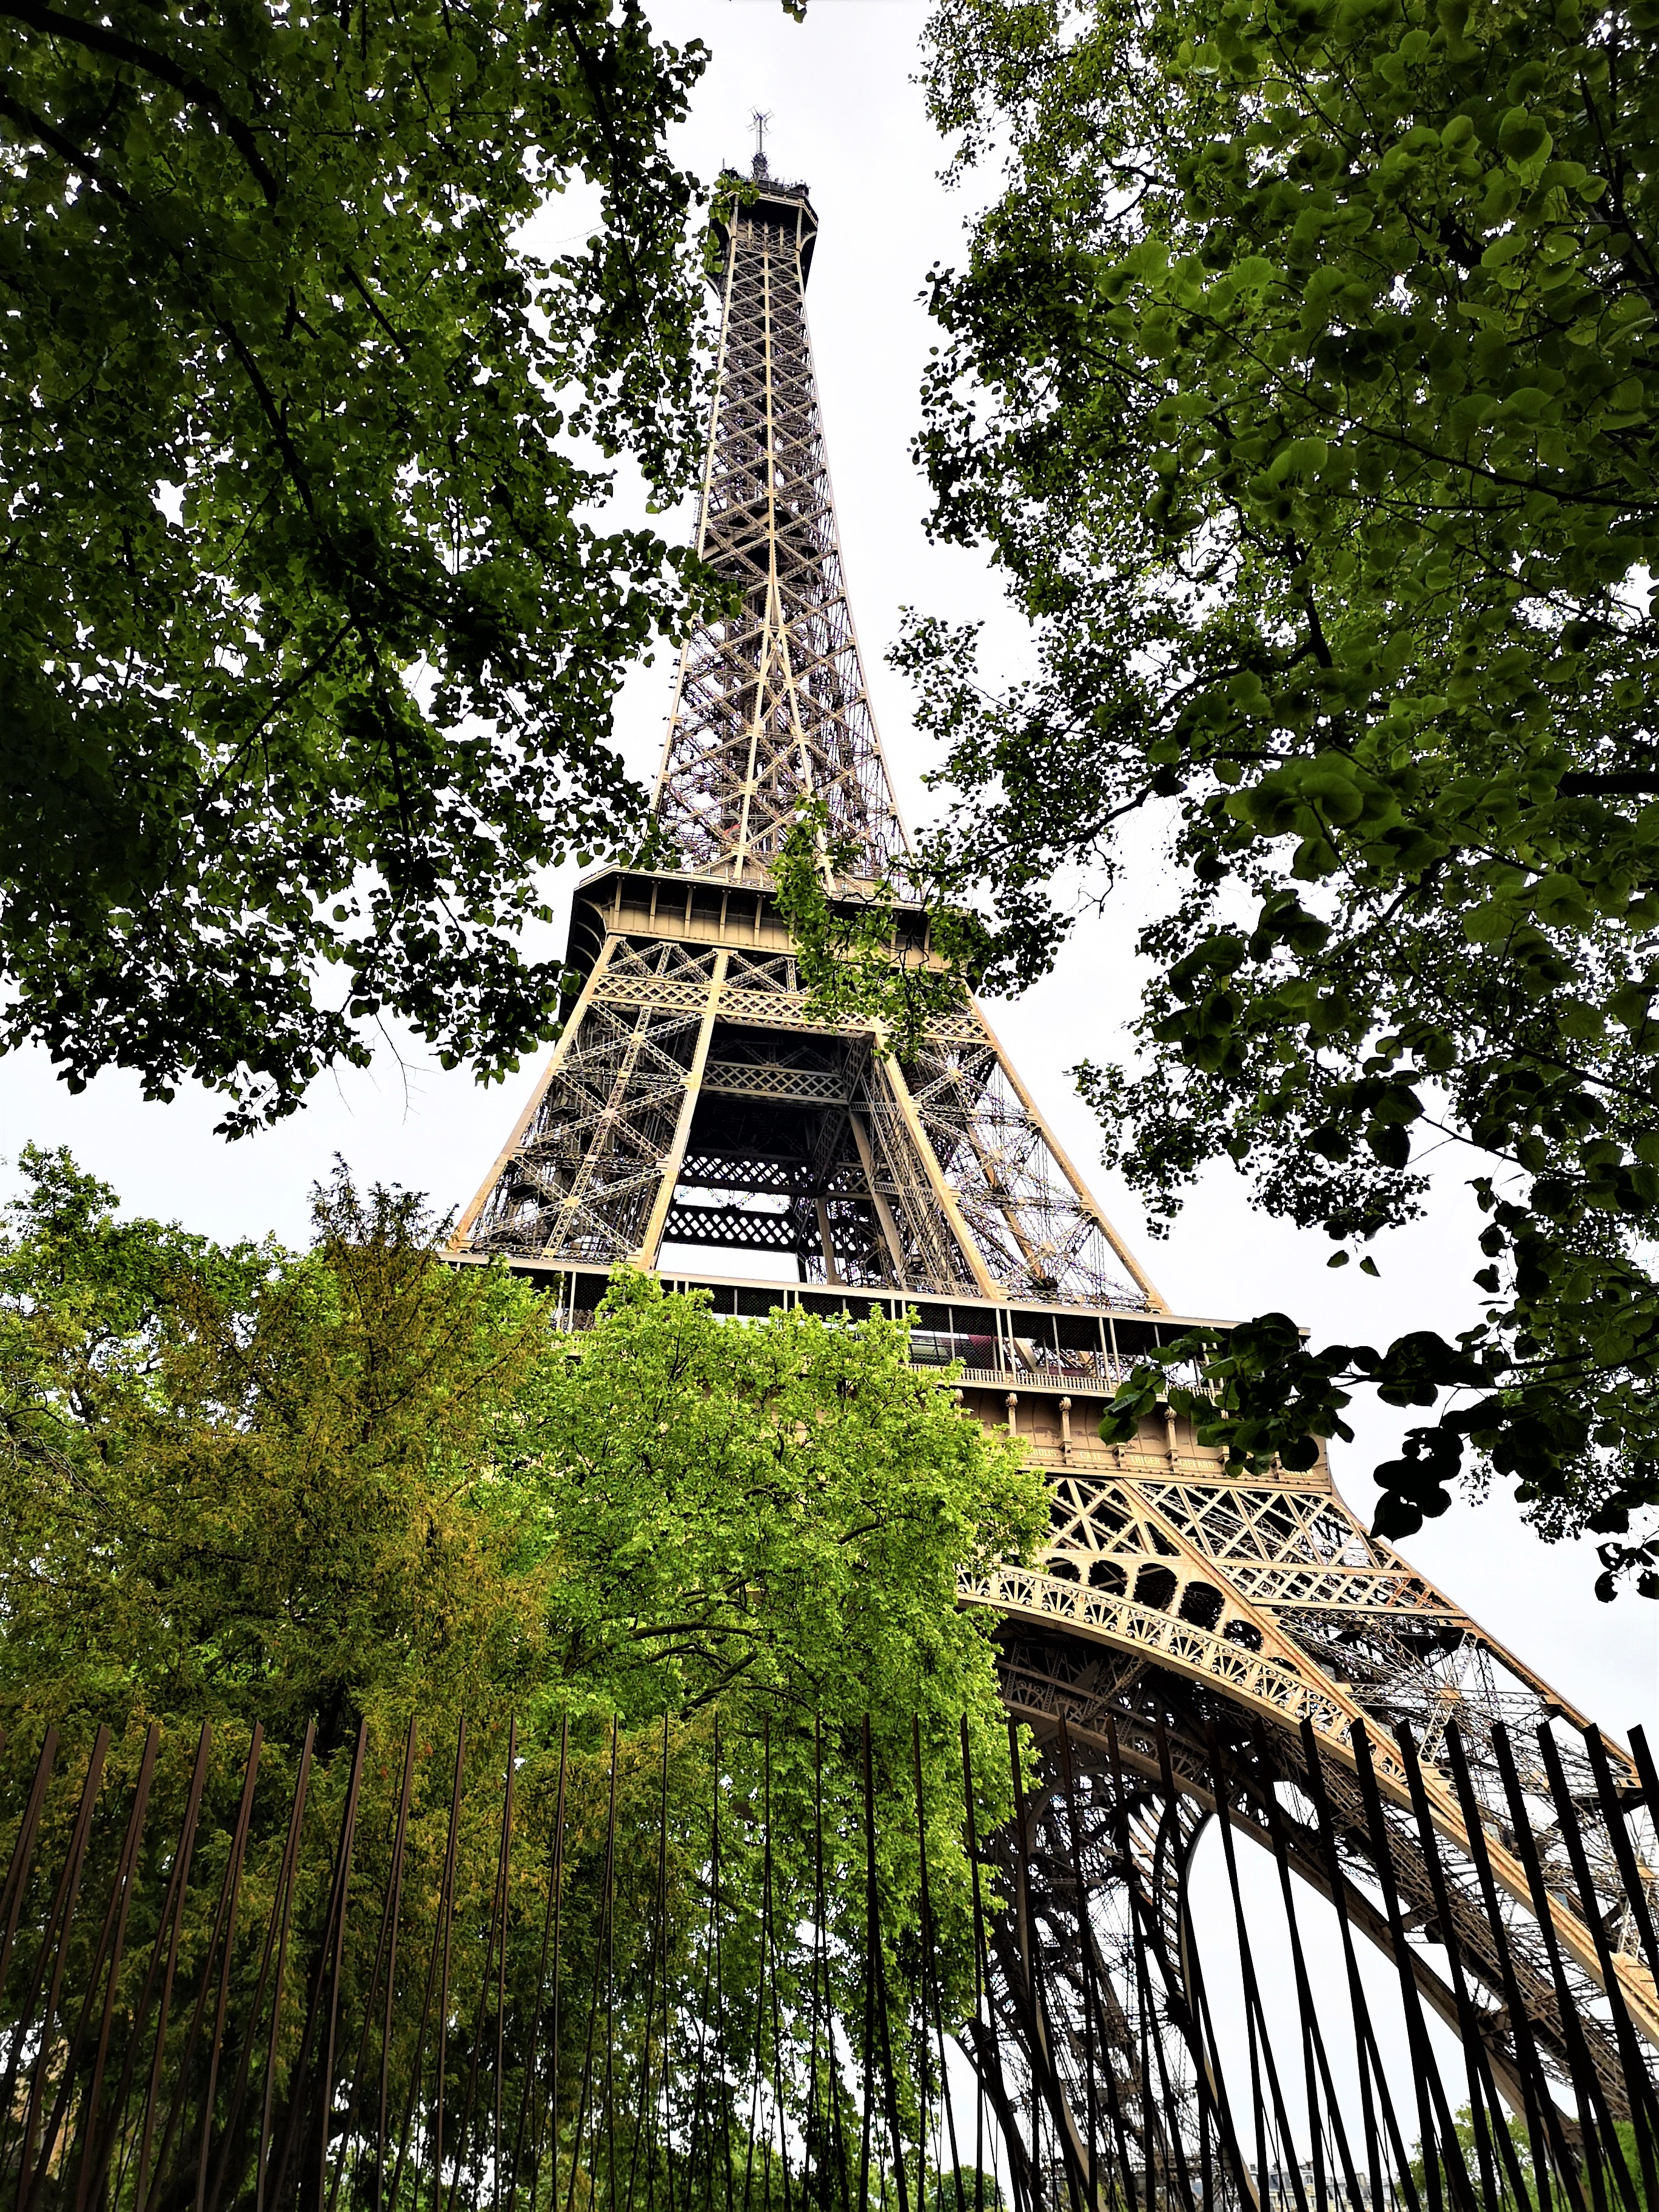 The Eiffel tower through the stunning trees